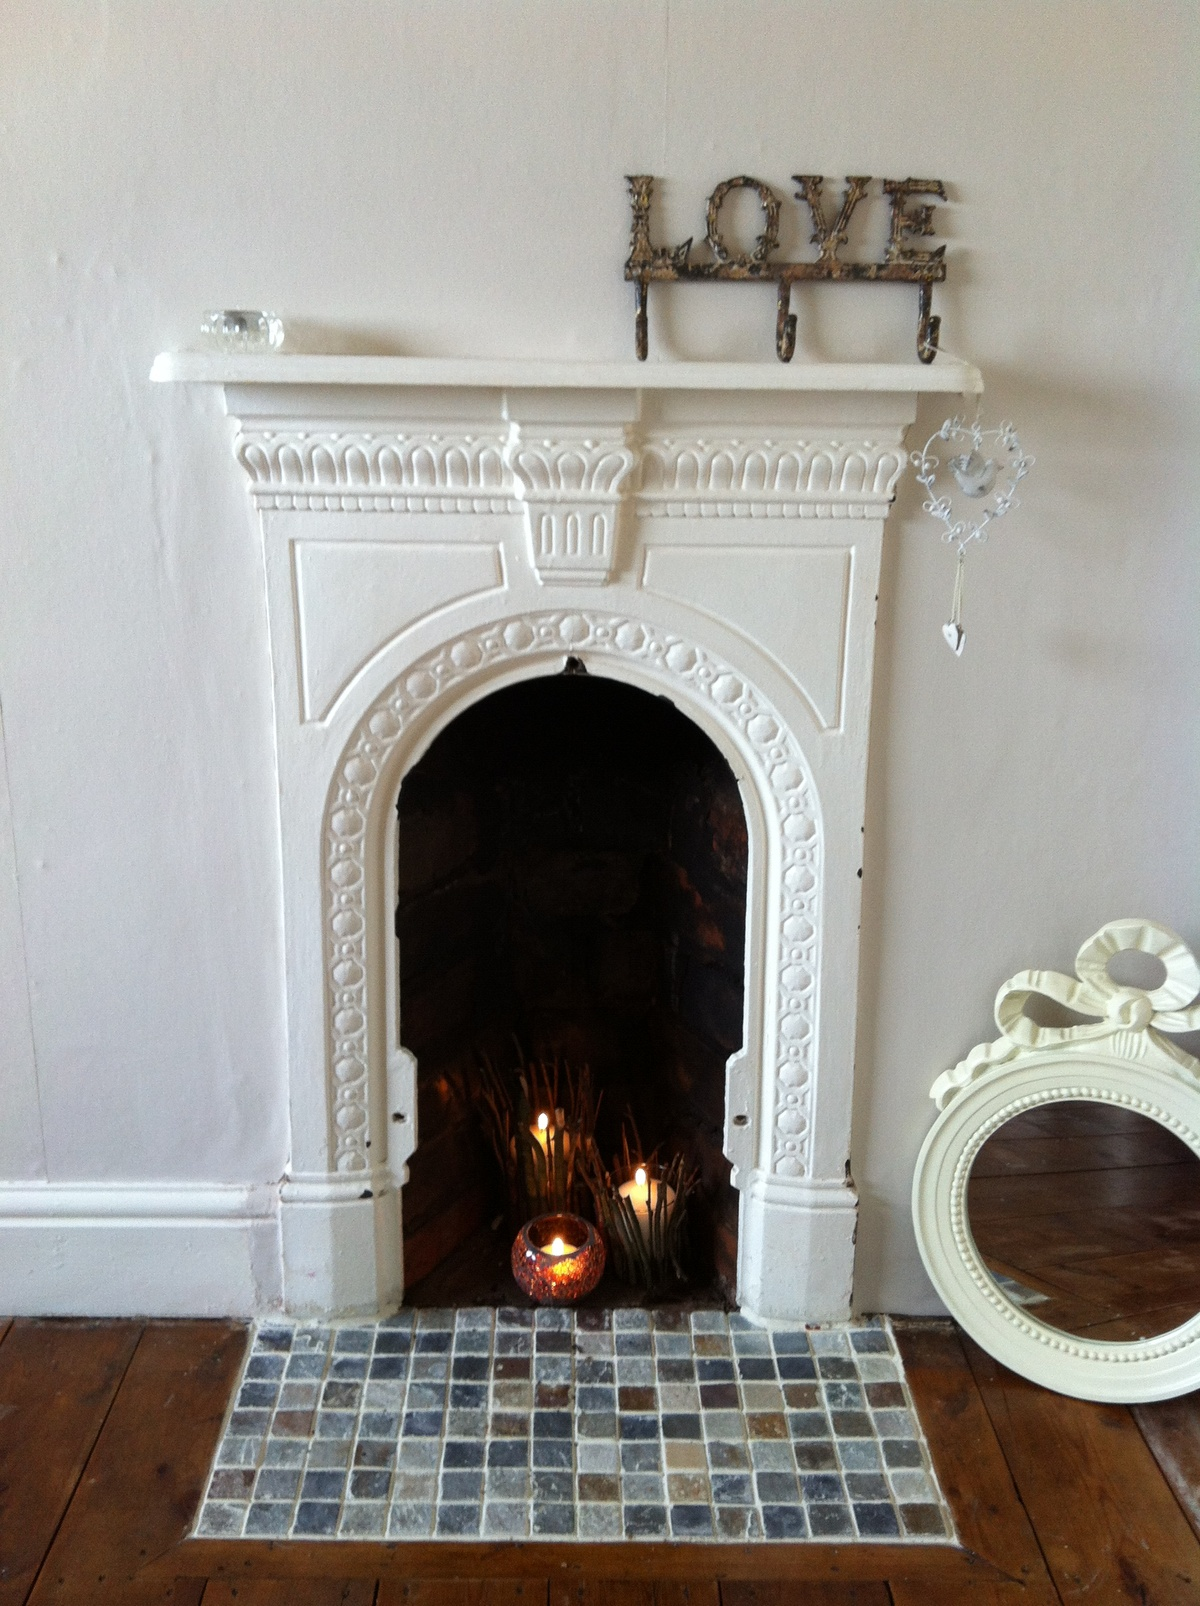 Old Bedroom Fireplace Ideas 1000 43 Images About Fireplaces On Pinterest Victorian